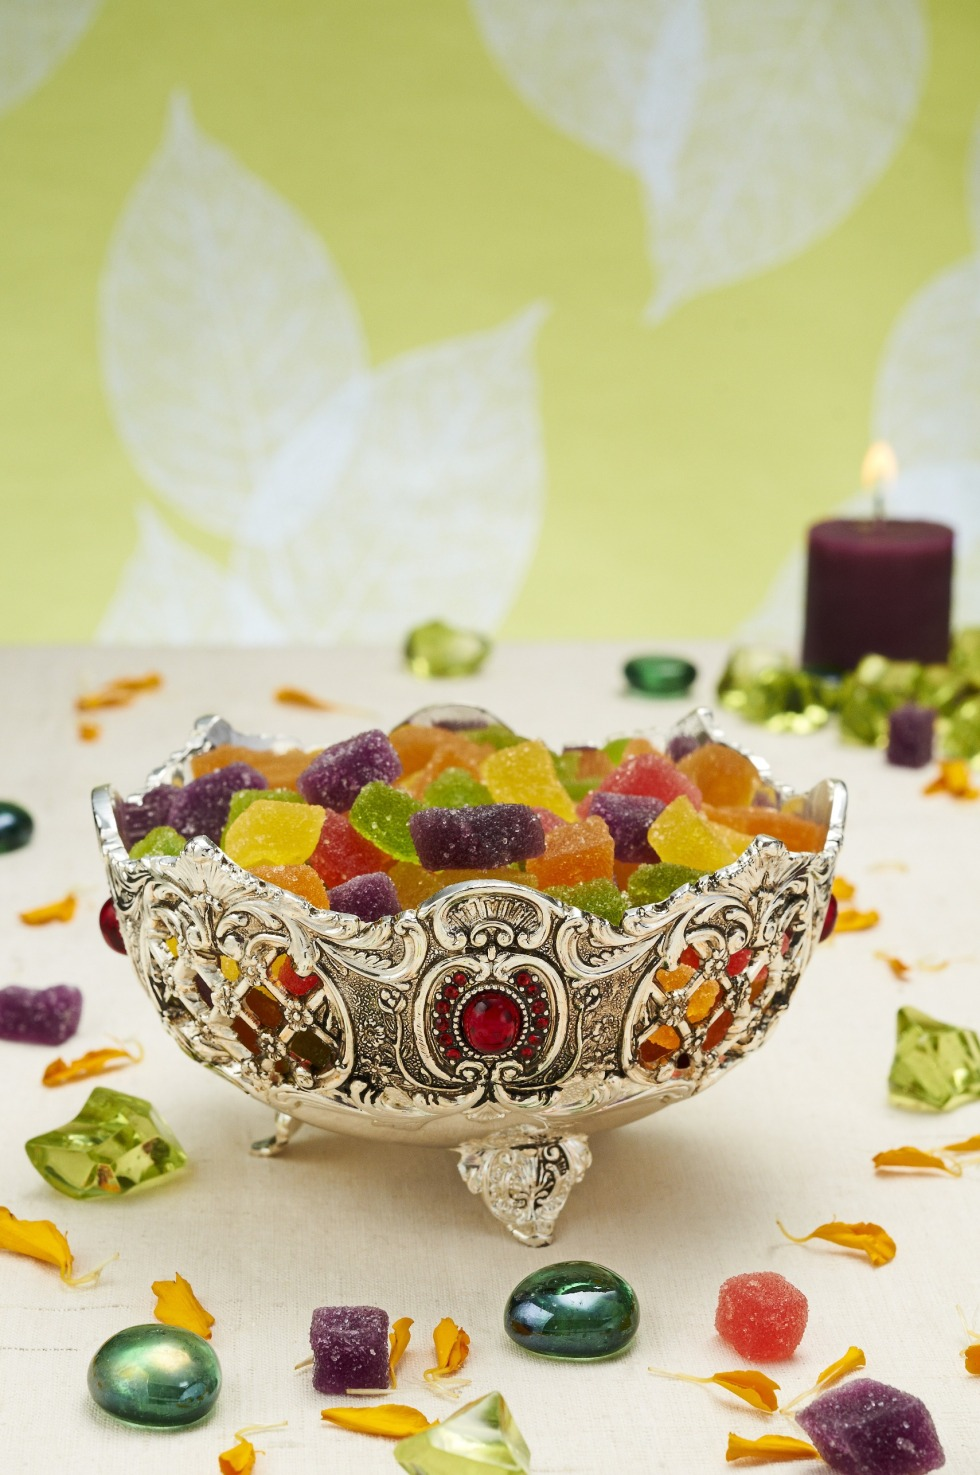 d'mart Exclusif IOTA silver-plated bowl with ruby crystals, Rs 1,400